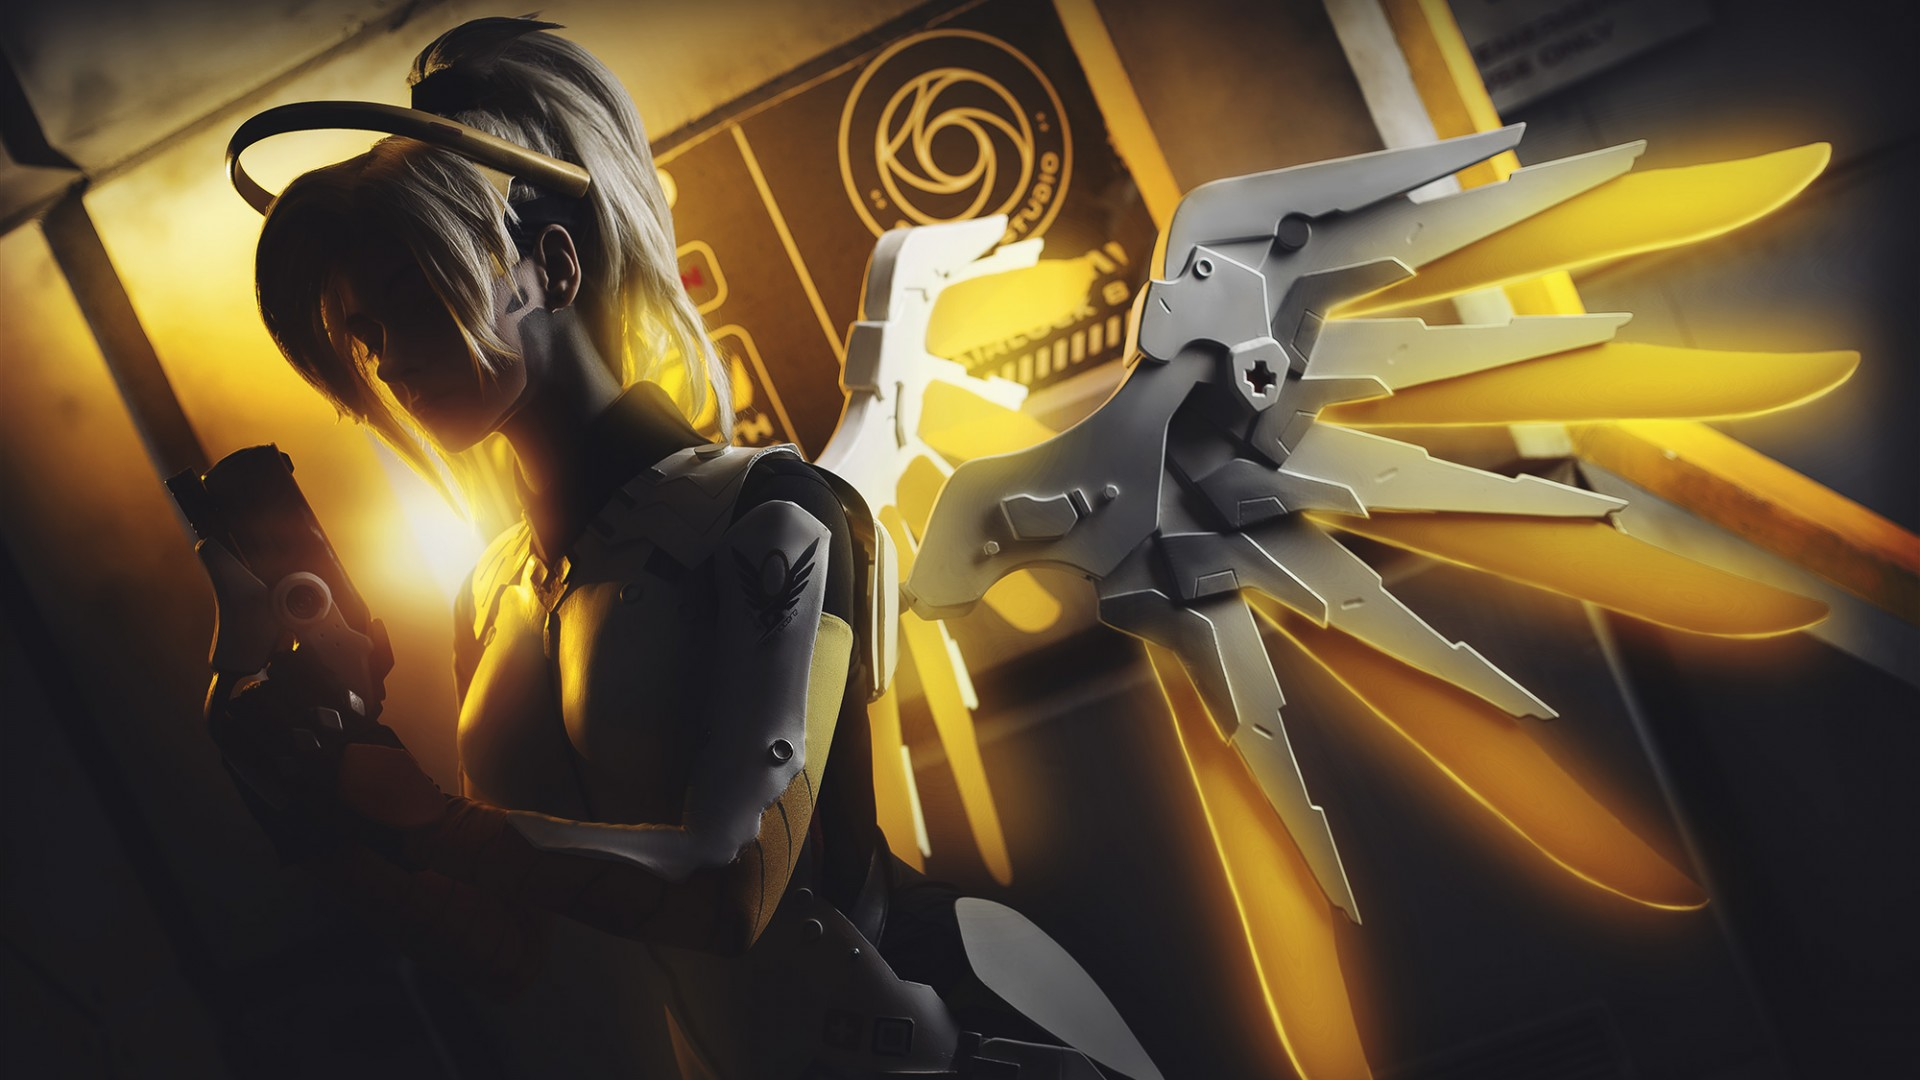 Download 290 Overwatch Wallpapers For Phone Computer